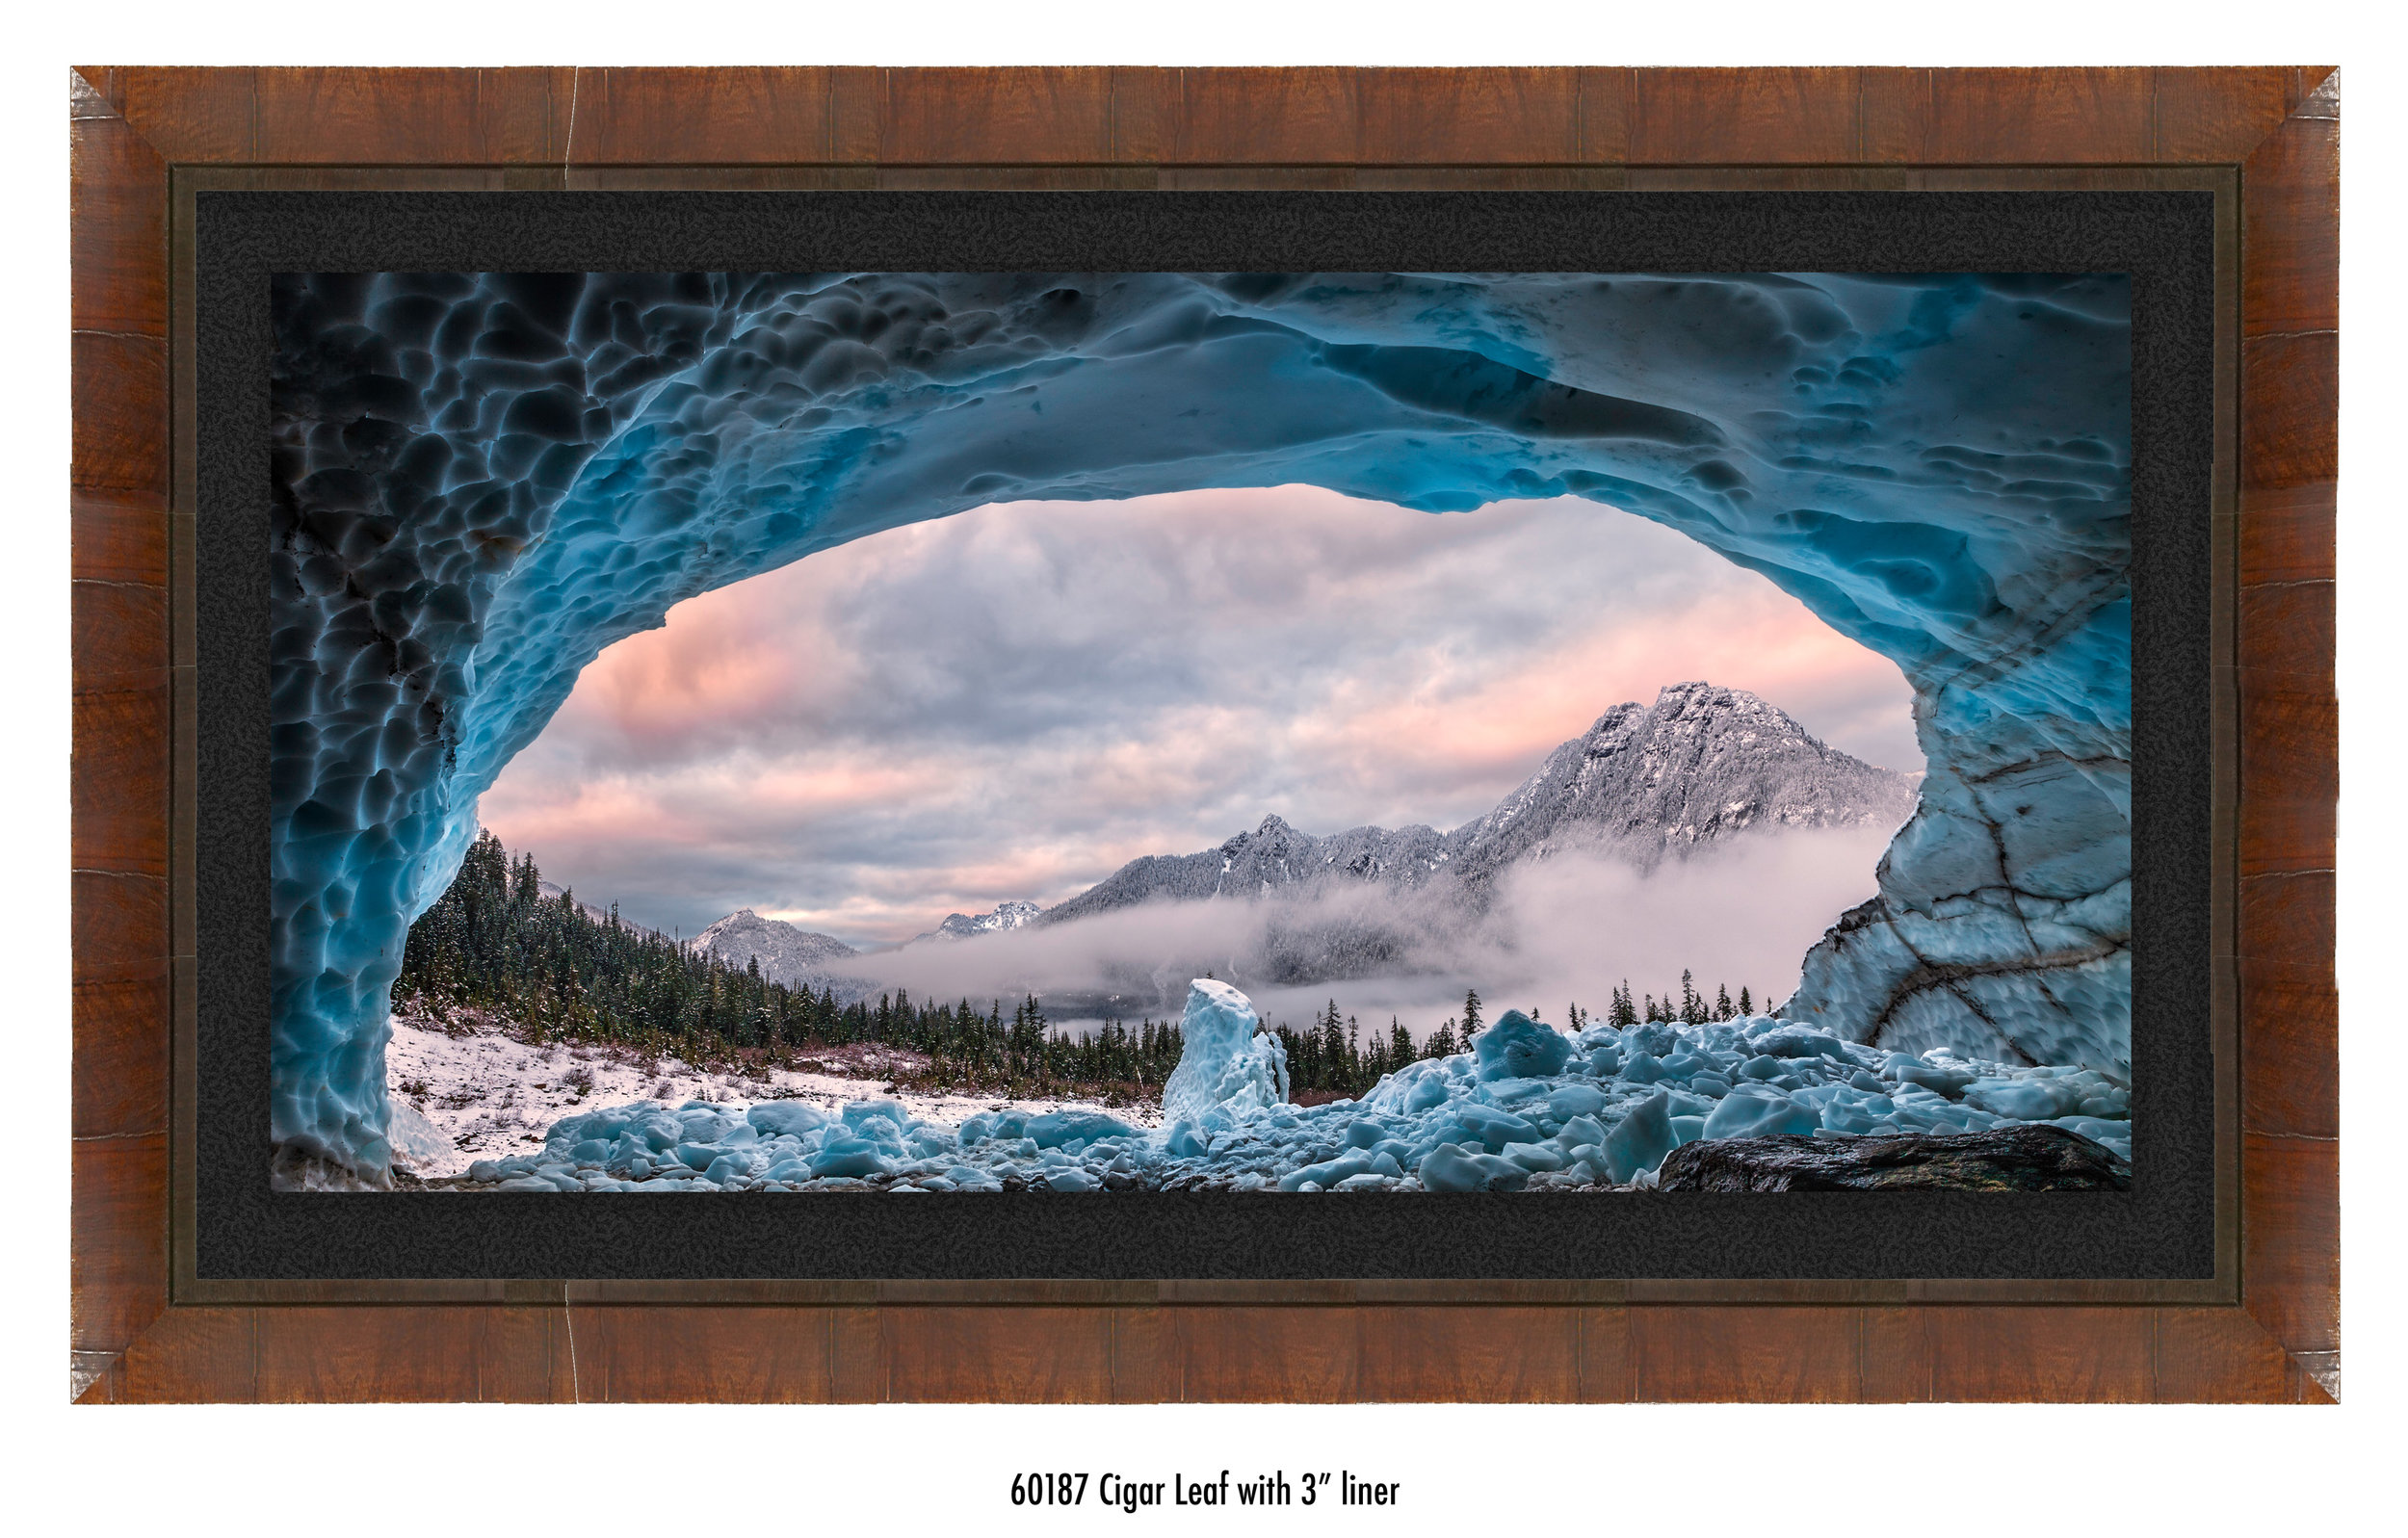 Ice Cave With A View in a frame